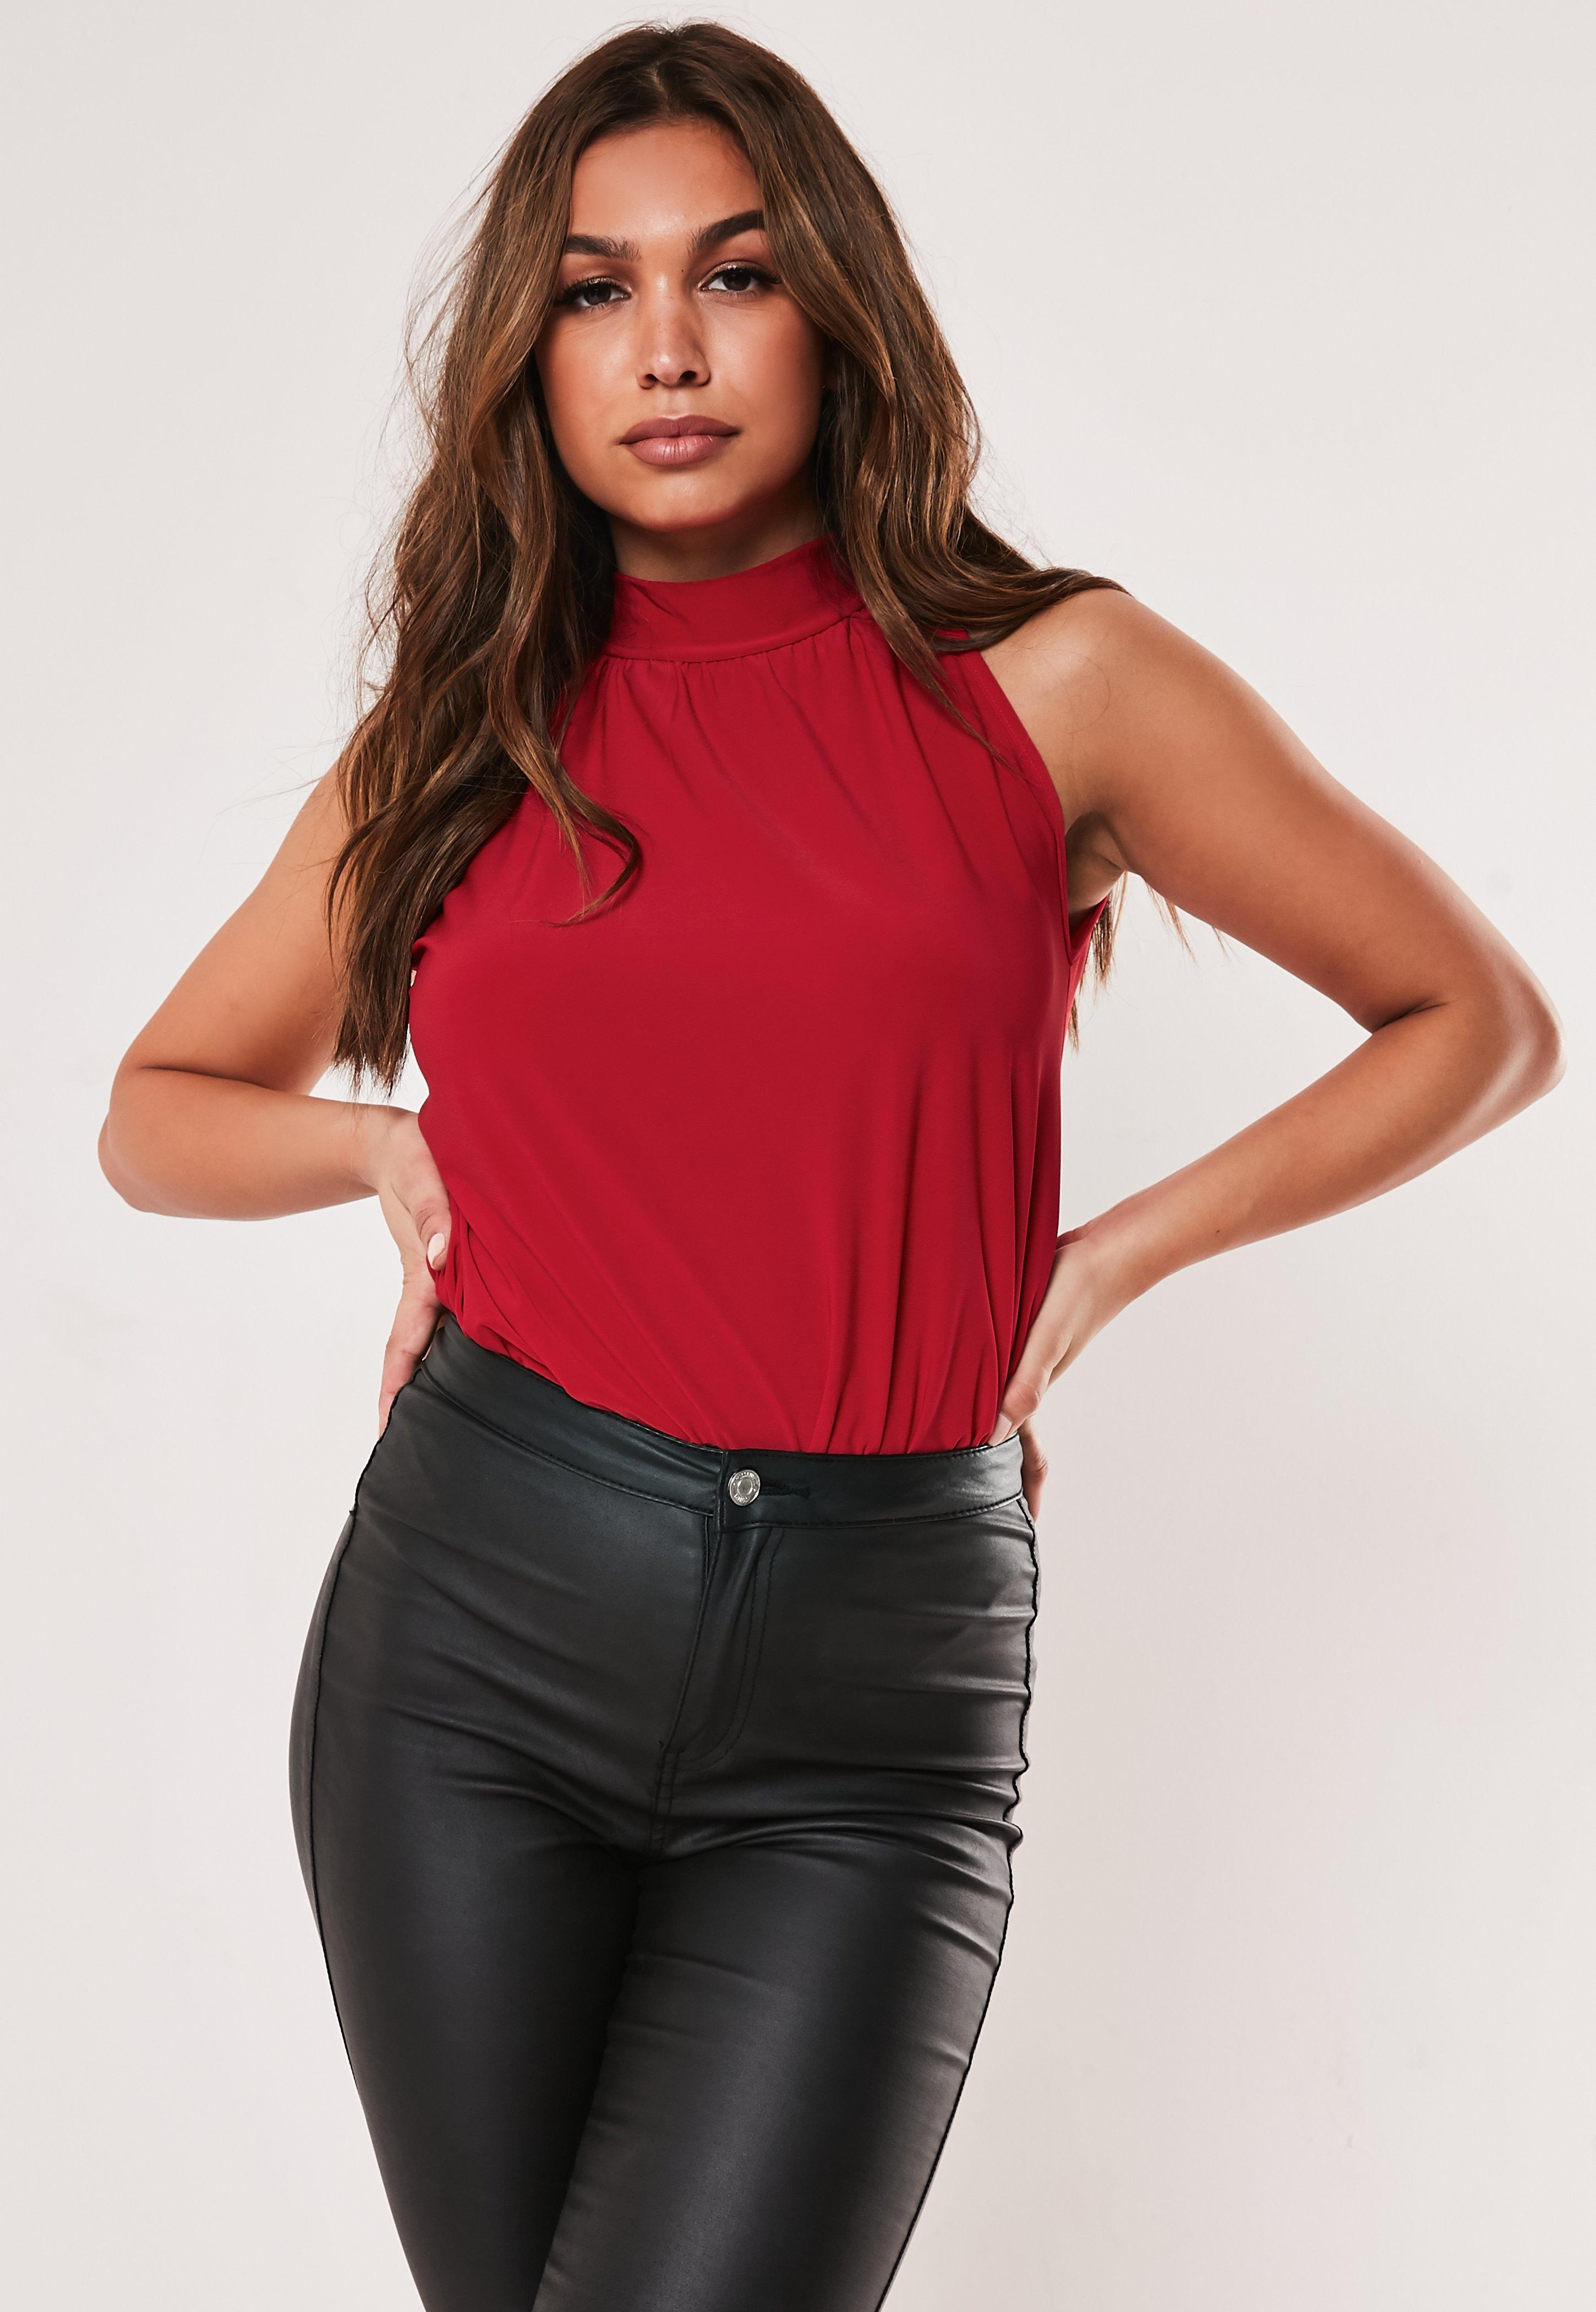 febf46a7cd7588 Red Tops | Burgundy & Maroon Tops - Missguided